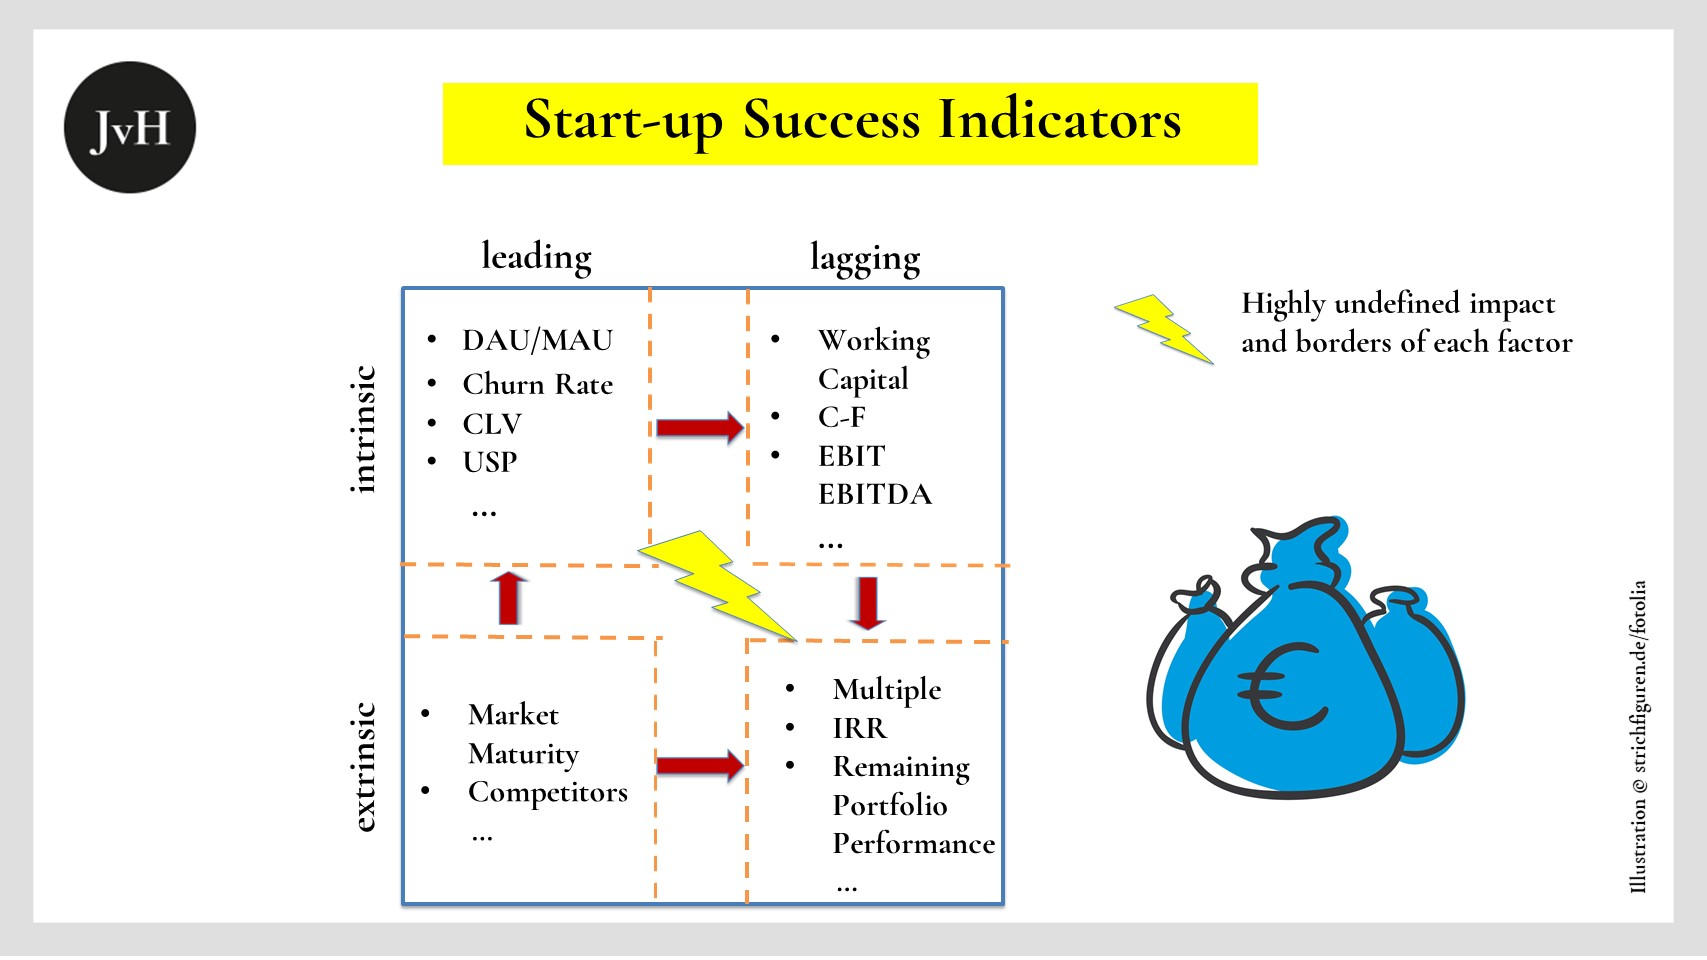 Table with types of different intrinsic and extrinsic start-up success factors